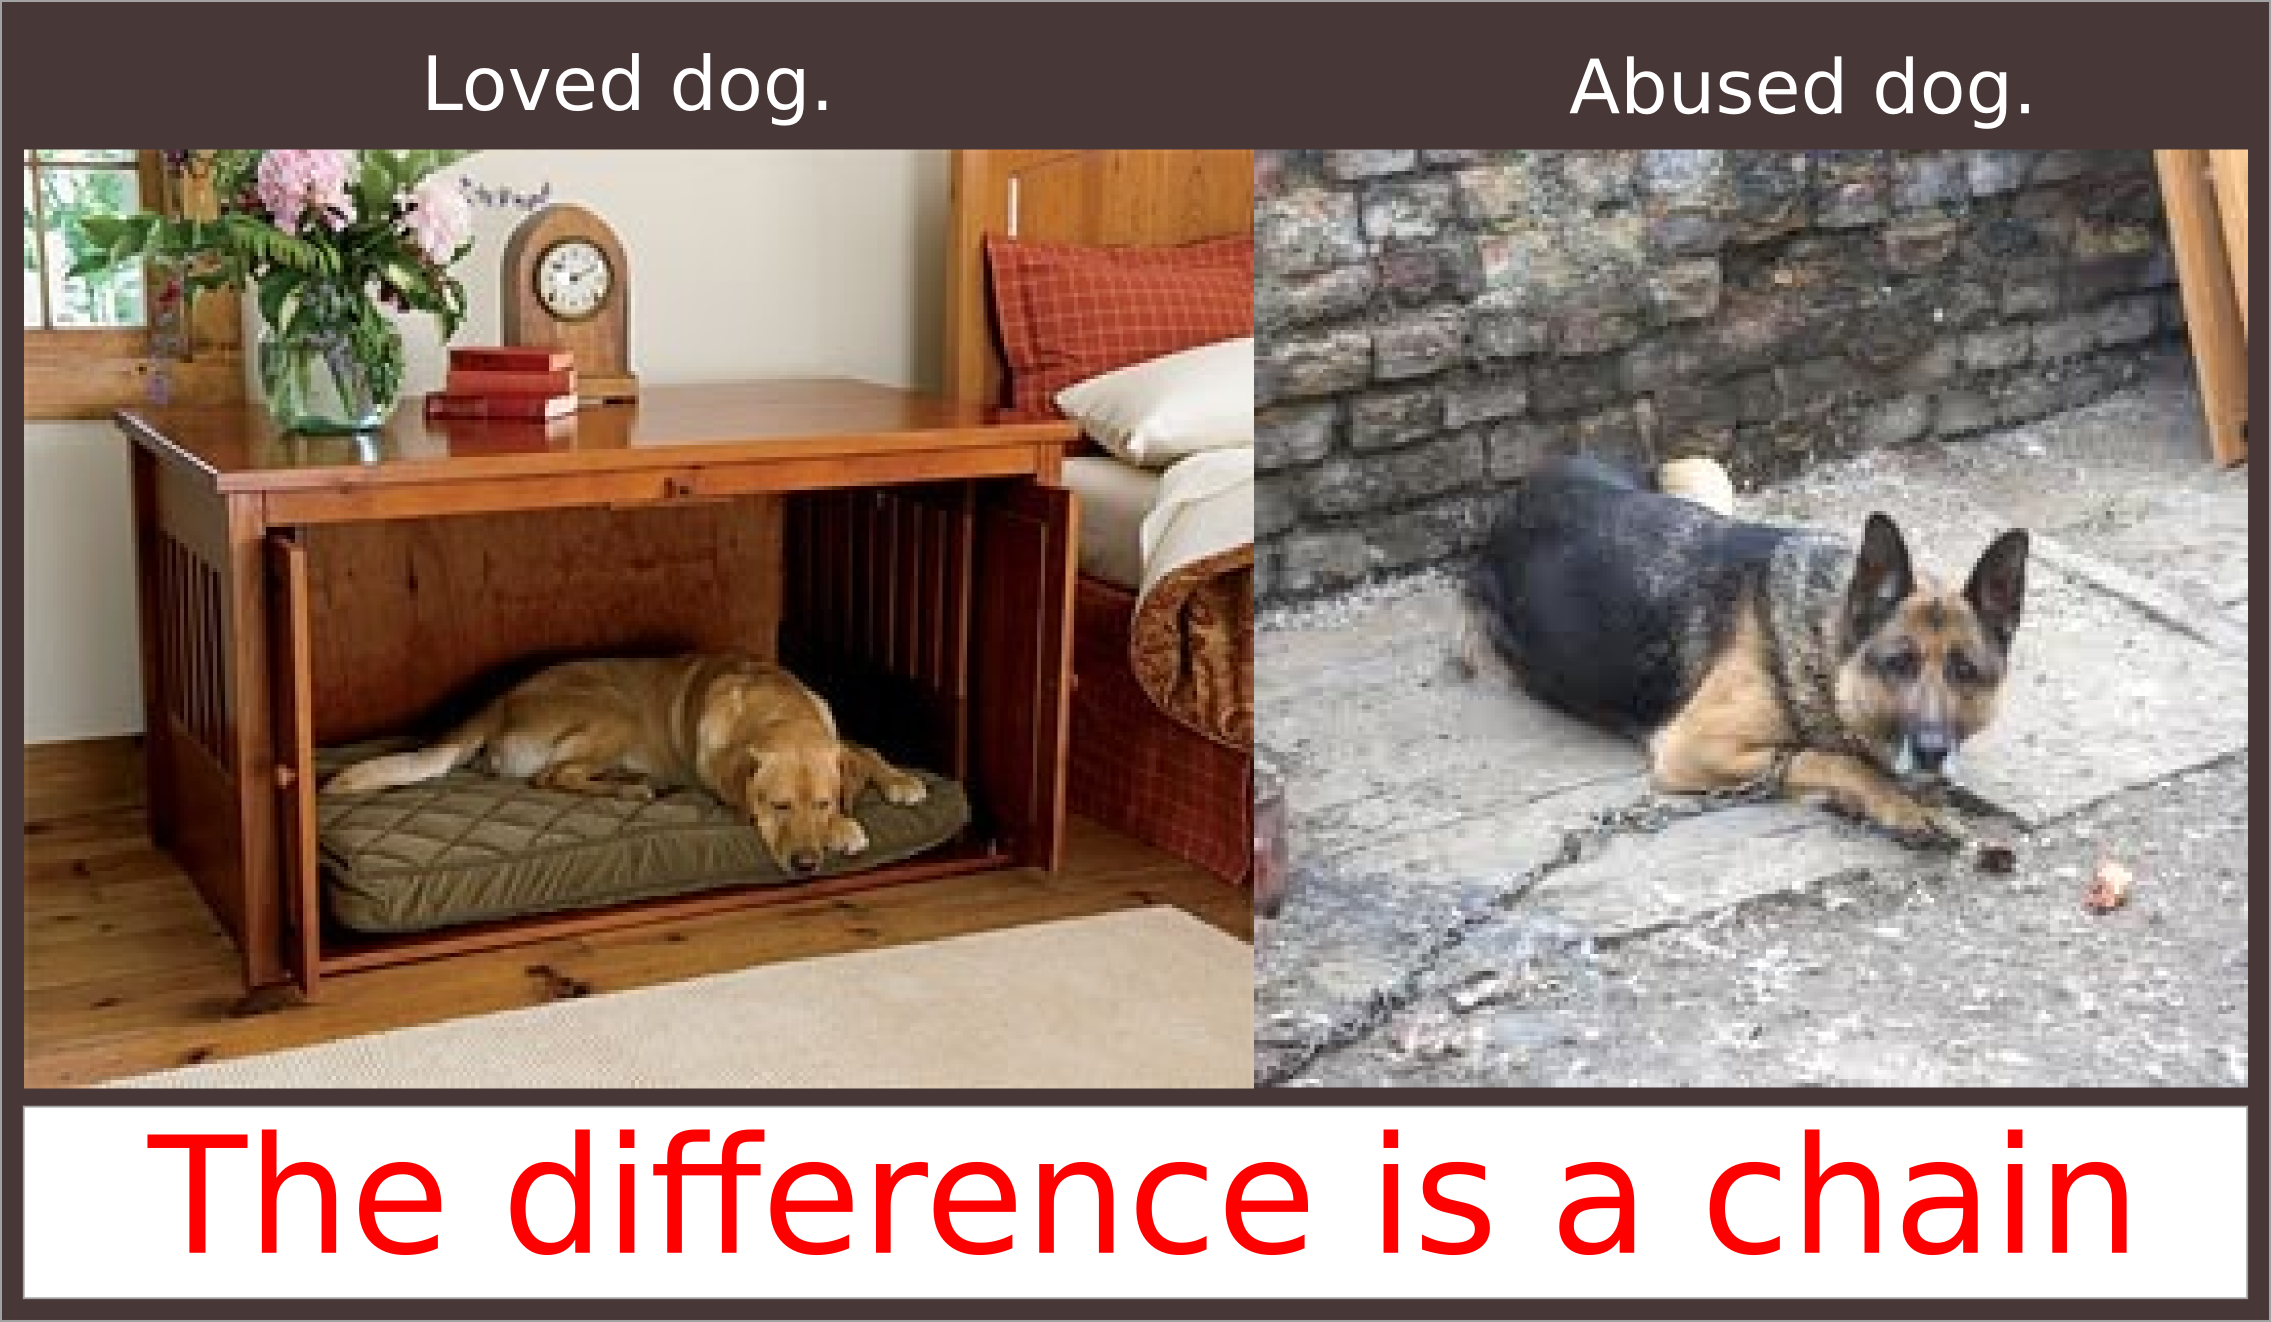 Happy dog versus chained dog